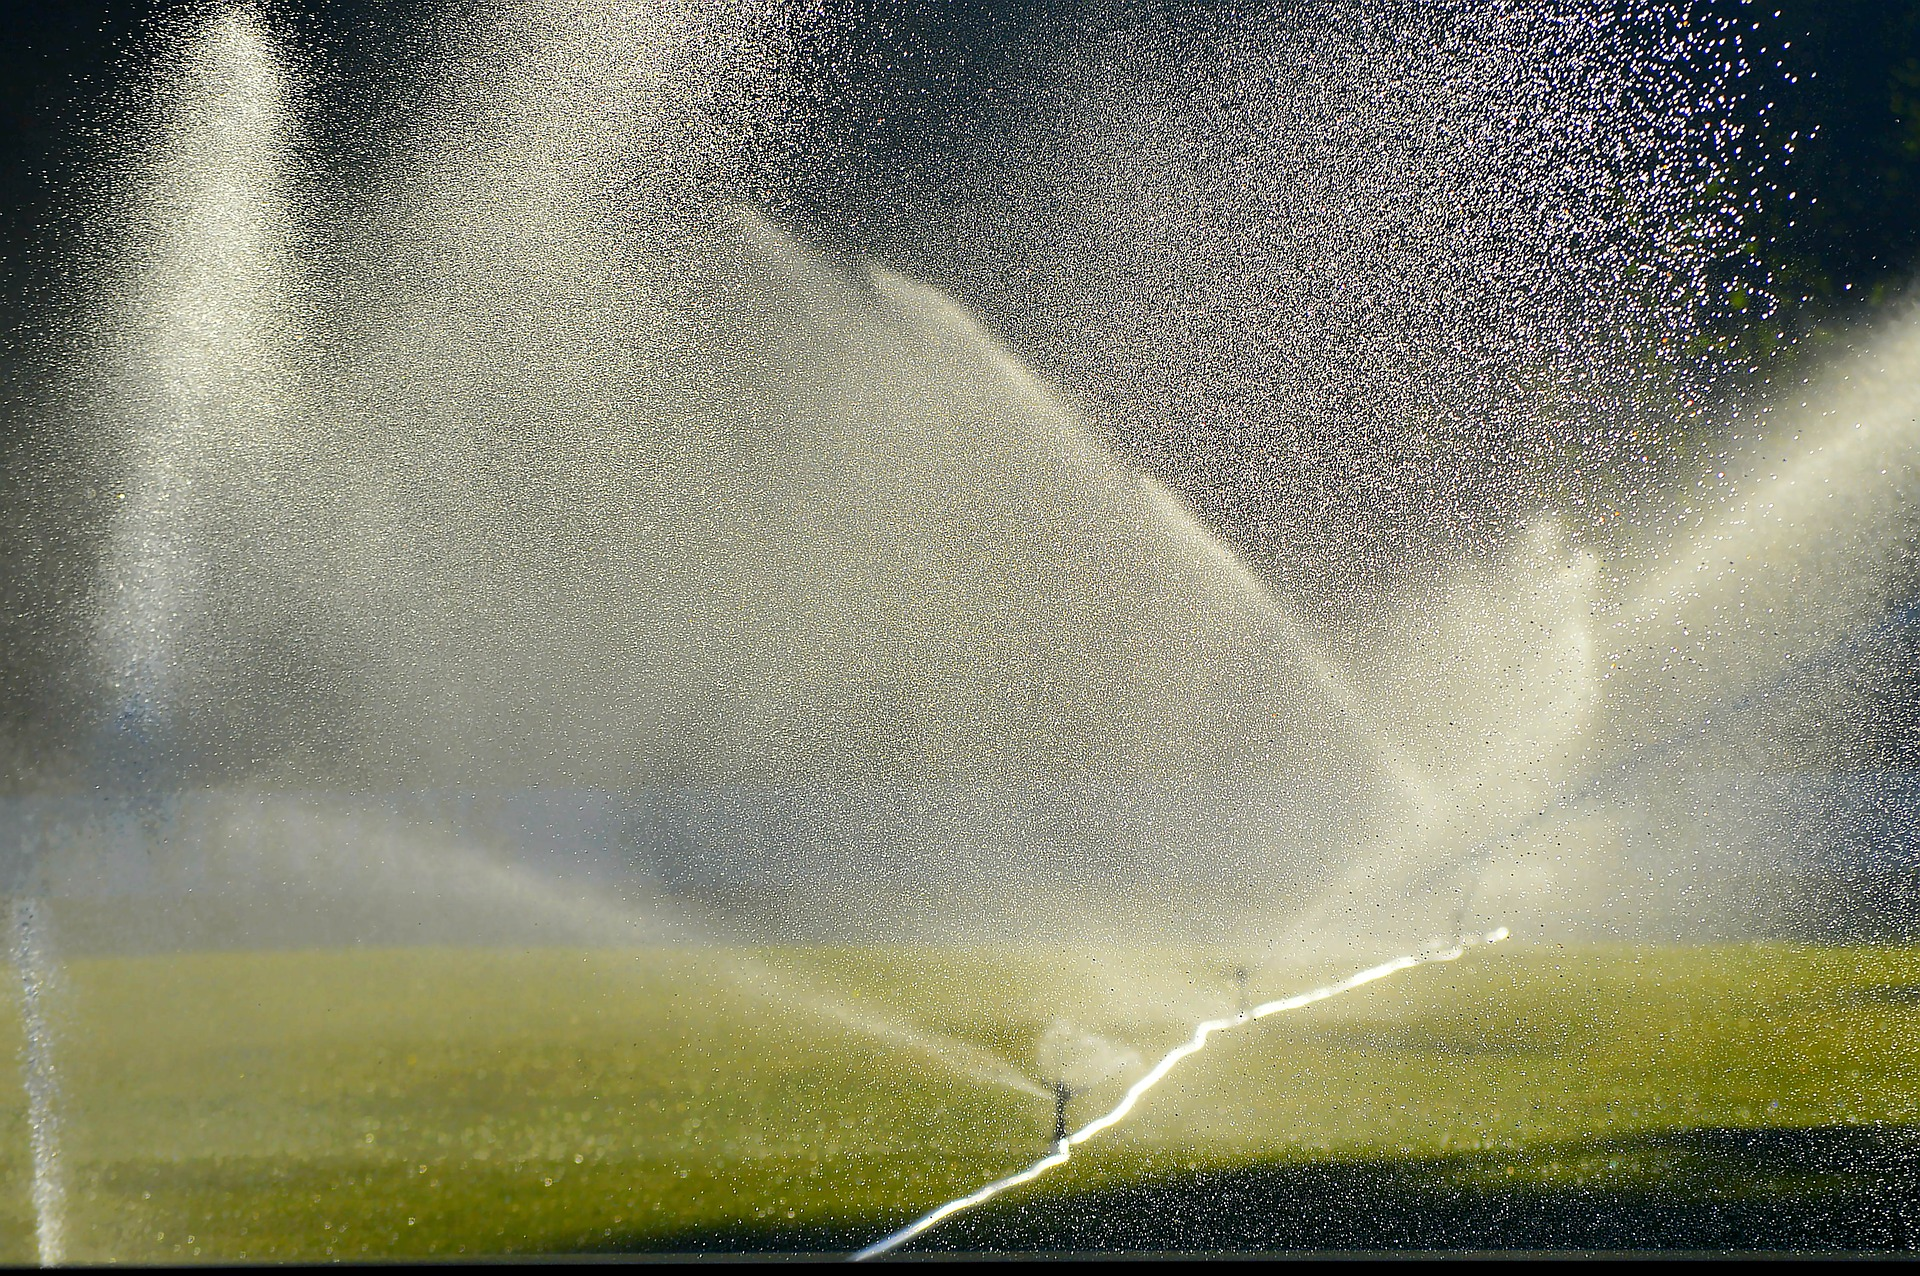 How To Conserve Water With A Sprinkler System